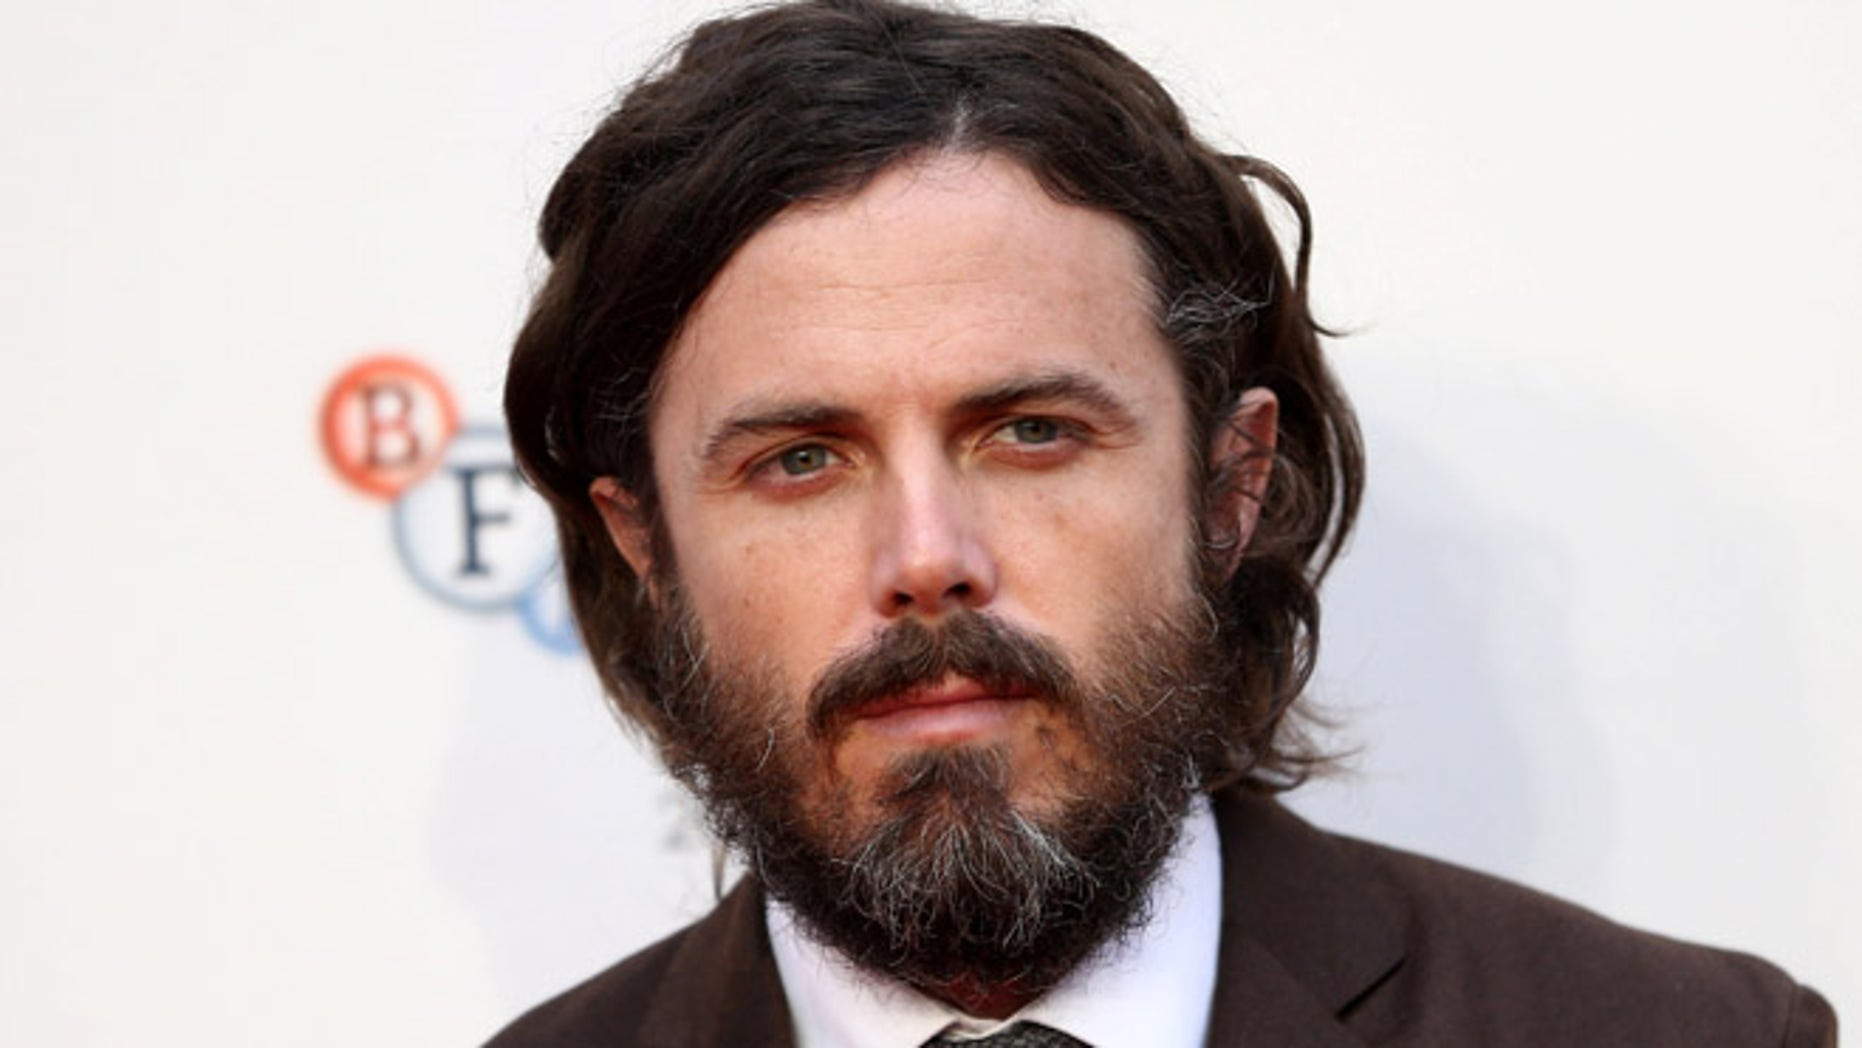 """Actor Casey Affleck poses for photographers at a Gala screening of his film """"Manchester by the Sea"""" at the 60th BFI London Film Festival in London, Britain October 8, 2016. REUTERS/Neil Hall - RTSRDOZ"""